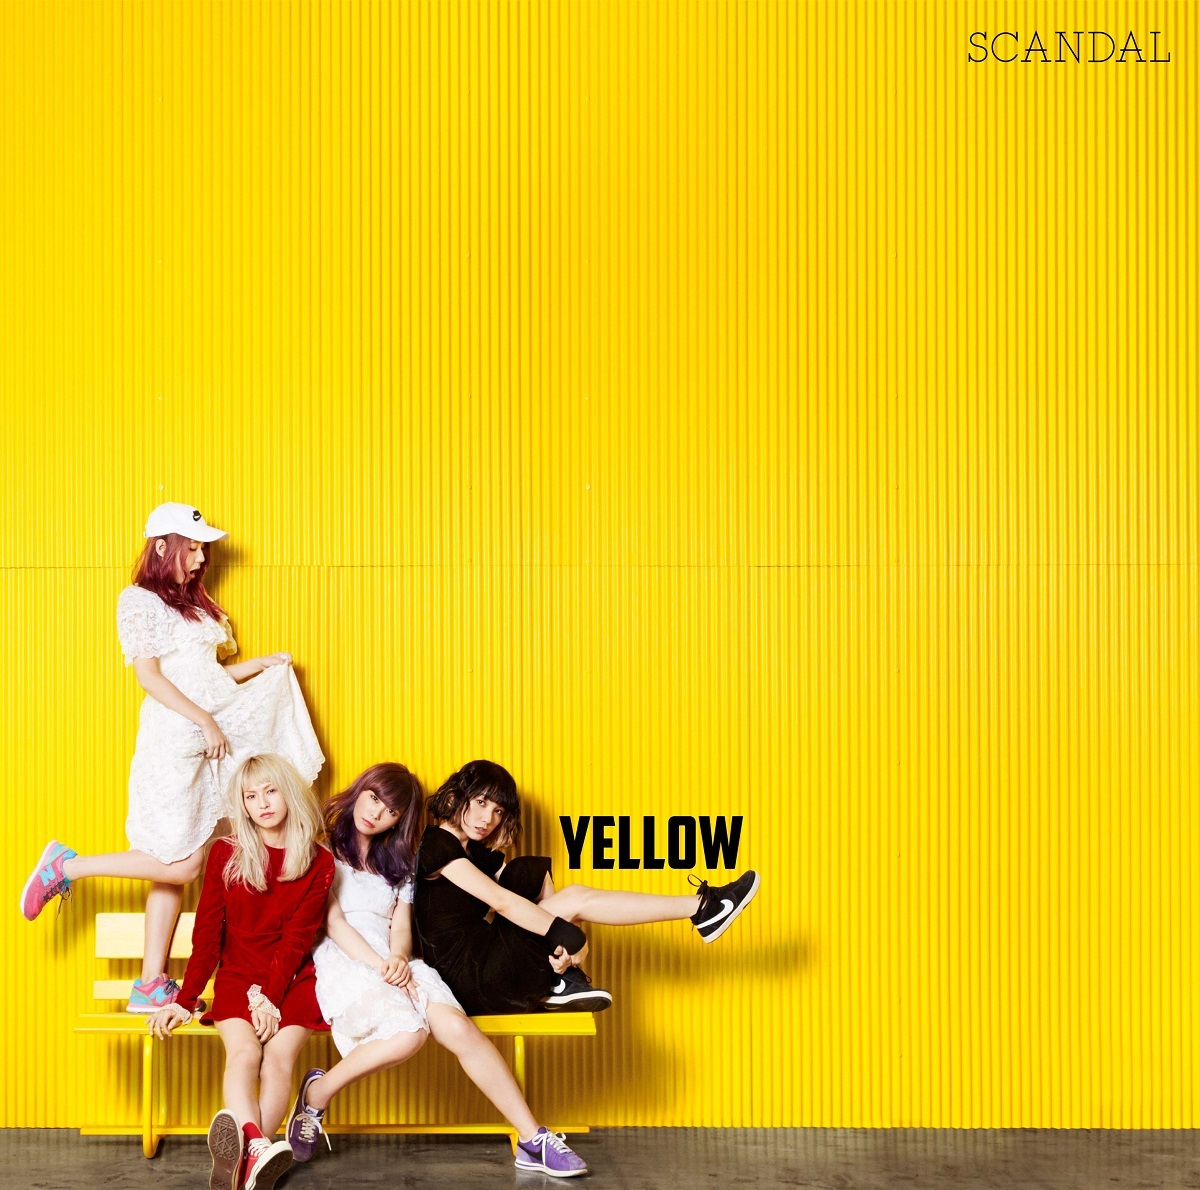 SCANDAL『YELLOW』通常盤